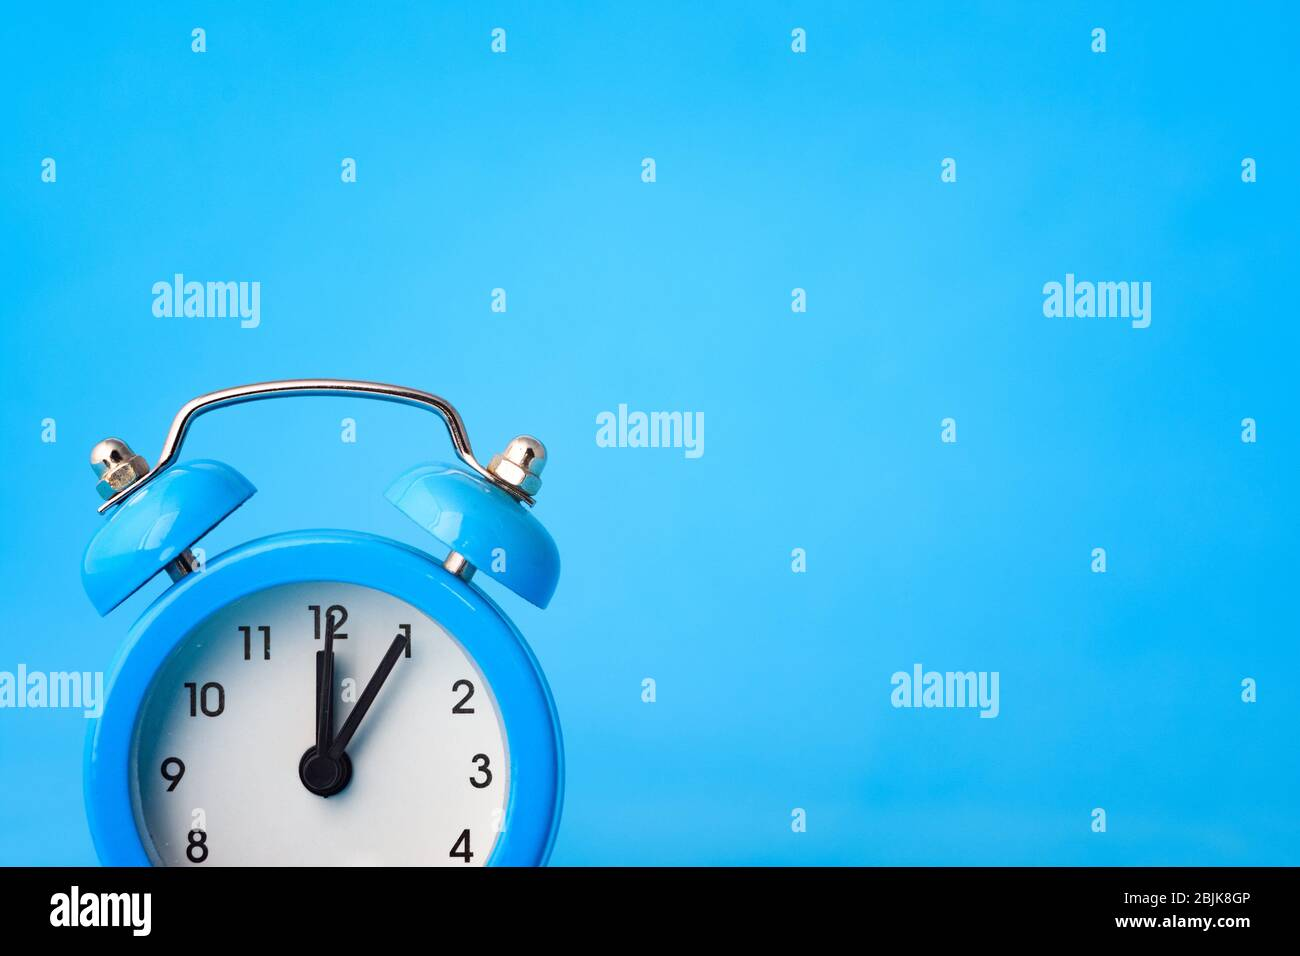 Clock concept - time, right empty place, blue background. Stock Photo